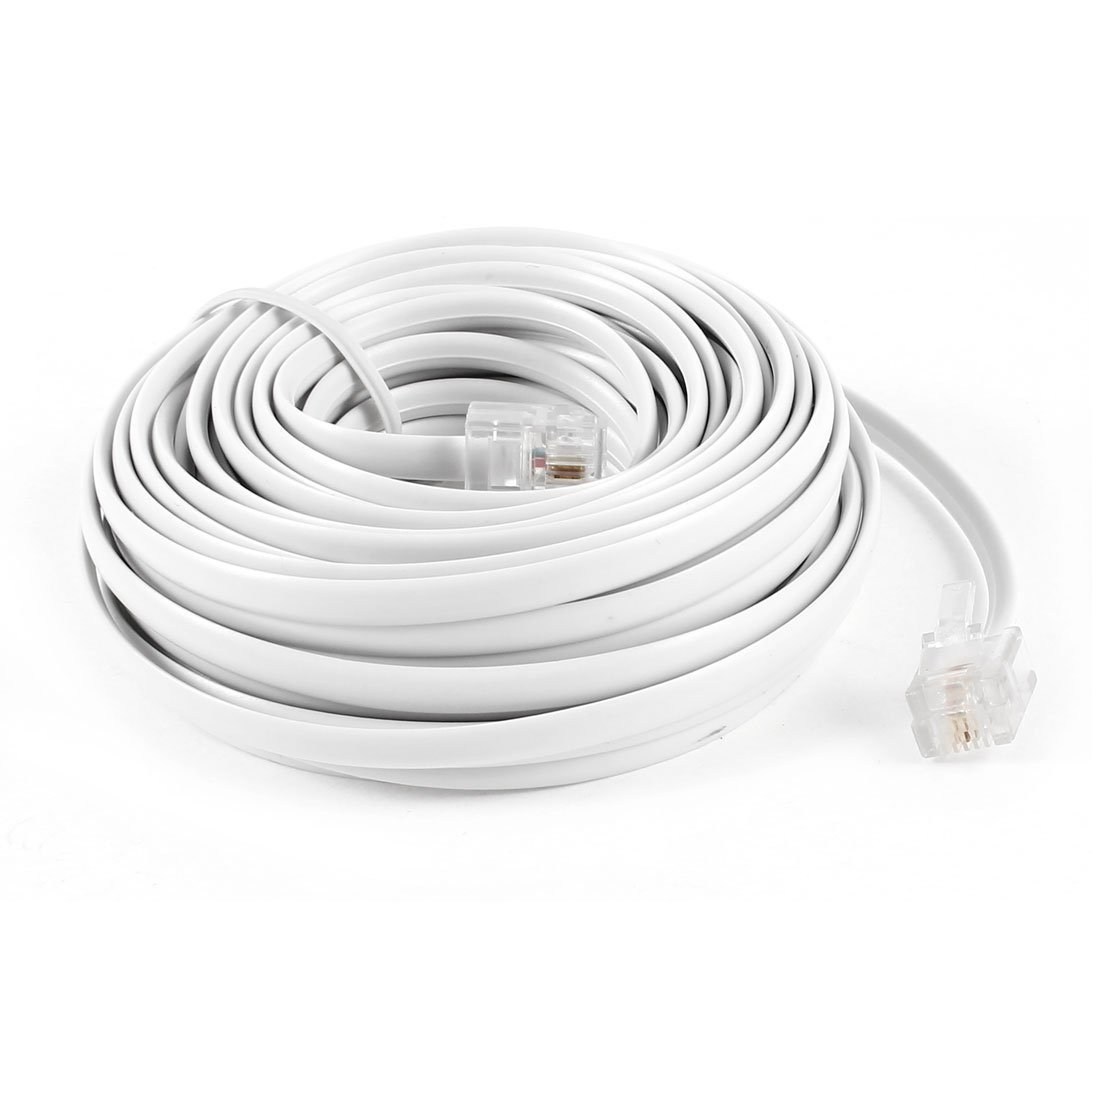 Cheap Standard Rj11 Find Deals On Line At Alibabacom Modem With Telephone Extensions Extension Sockets Wiring Get Quotations Gle2016 9m 30ft 6p2c Modular Phone Cables Wire White For Phones